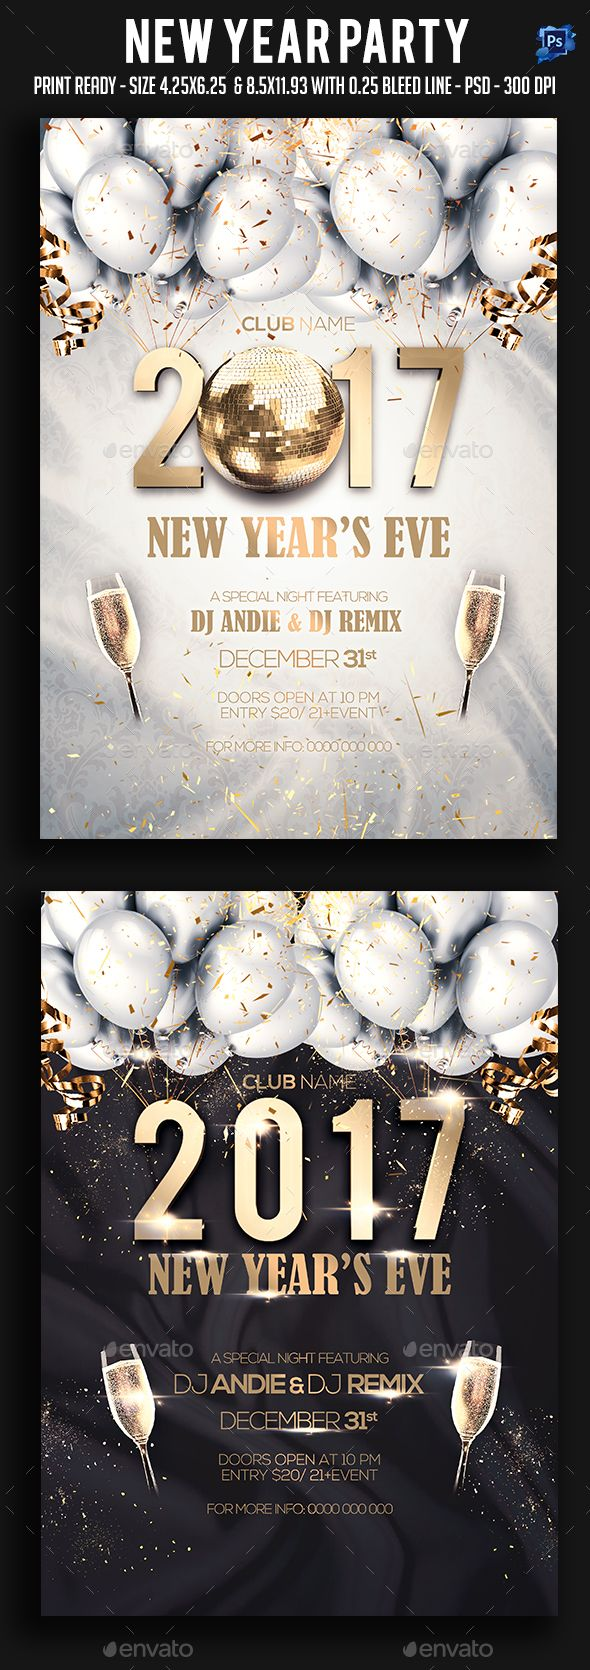 New Year Party Flyer Template PSD #download                                                                                                                                                                                 More